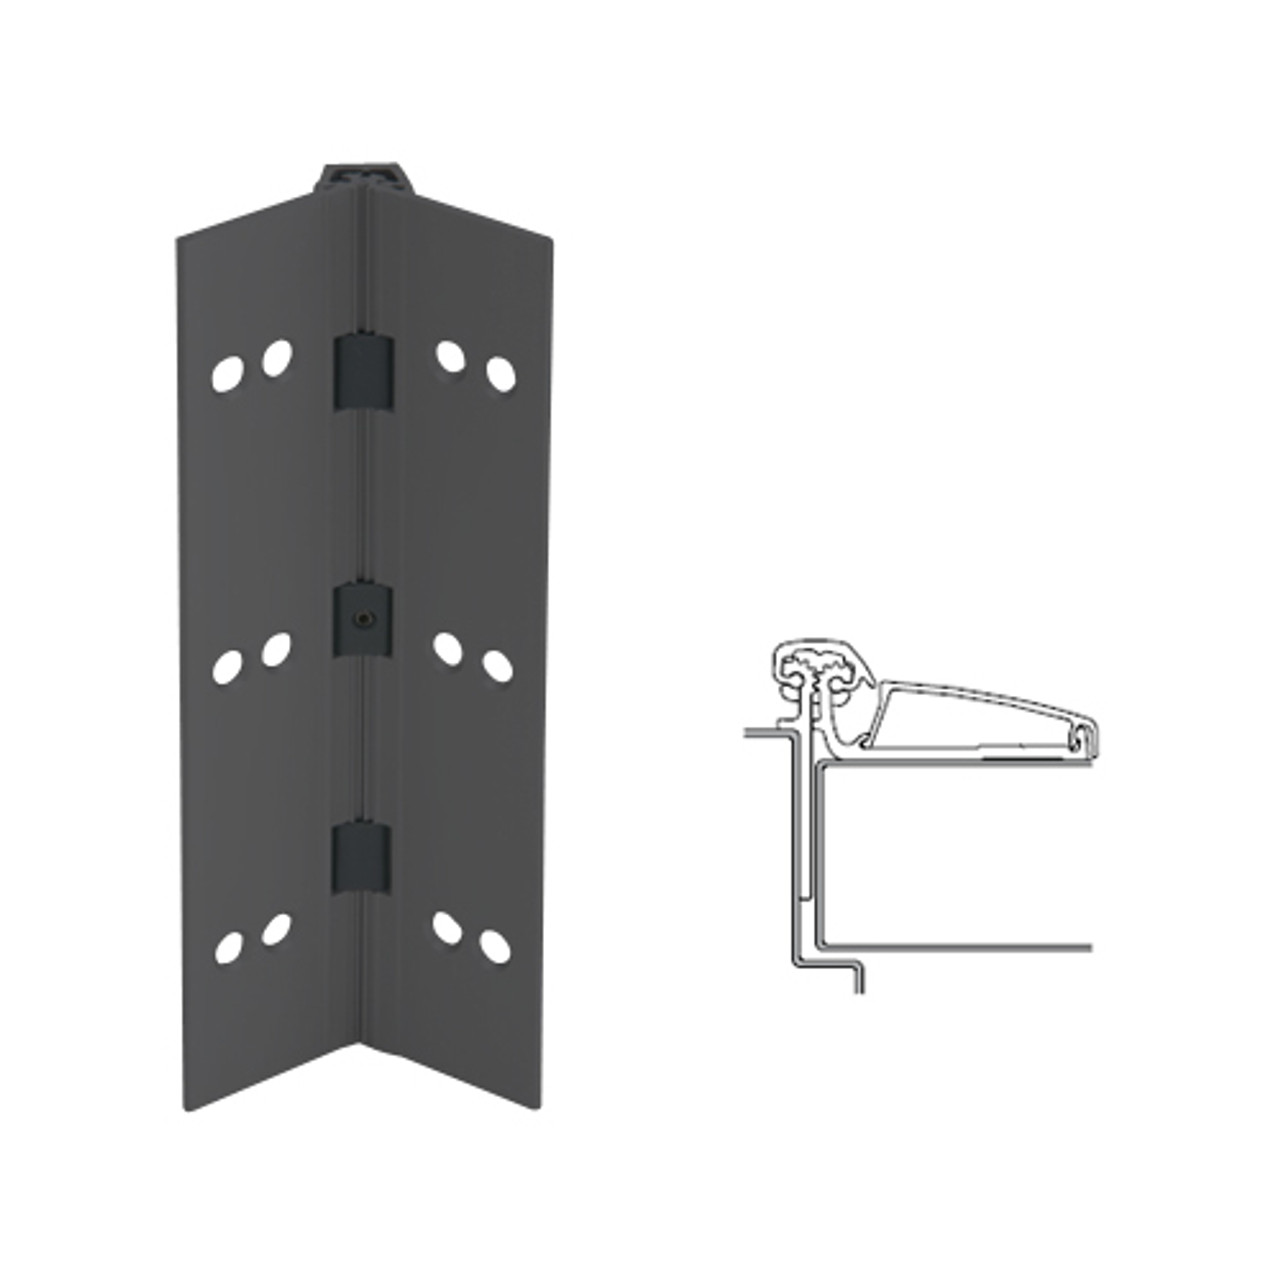 045XY-315AN-95-SECWDWD IVES Adjustable Half Surface Continuous Geared Hinges with Security Screws - Hex Pin Drive in Anodized Black